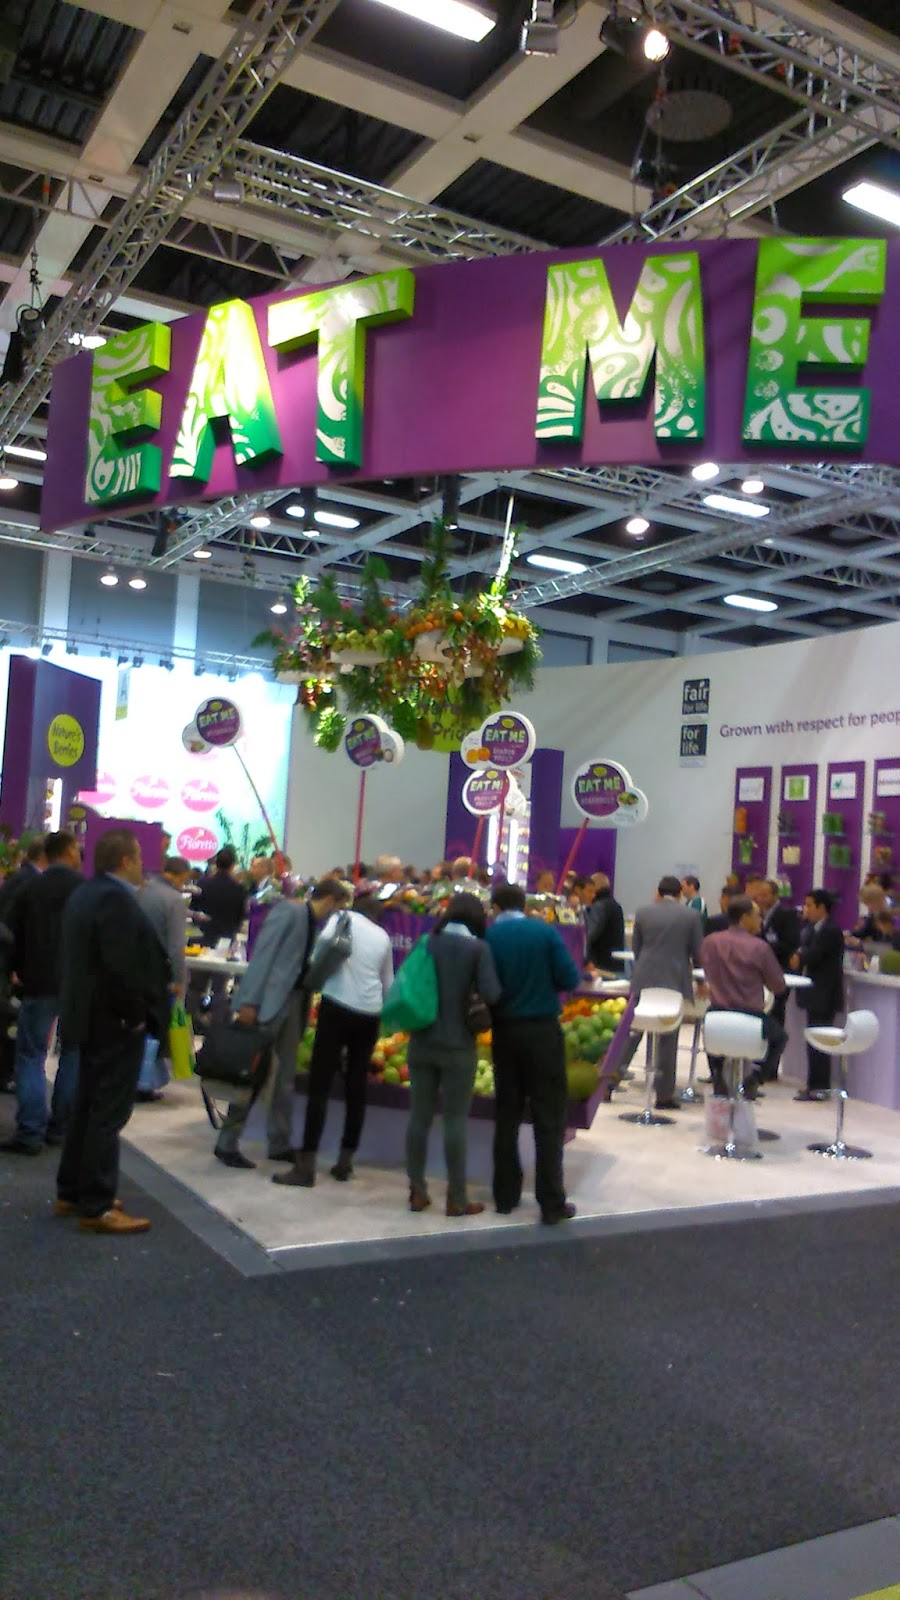 Eat me, fruit logistica 2014